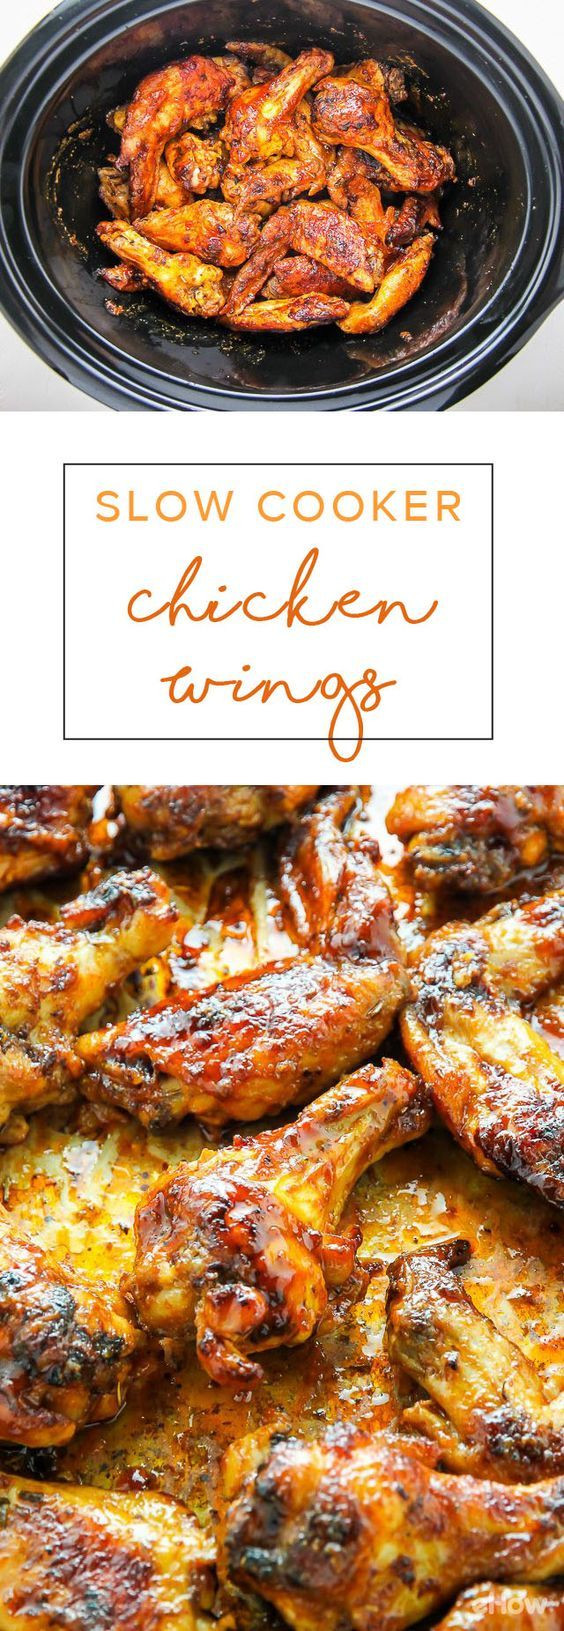 Cooking Chicken Wings  How to Cook Chicken Wings in a Slow Cooker